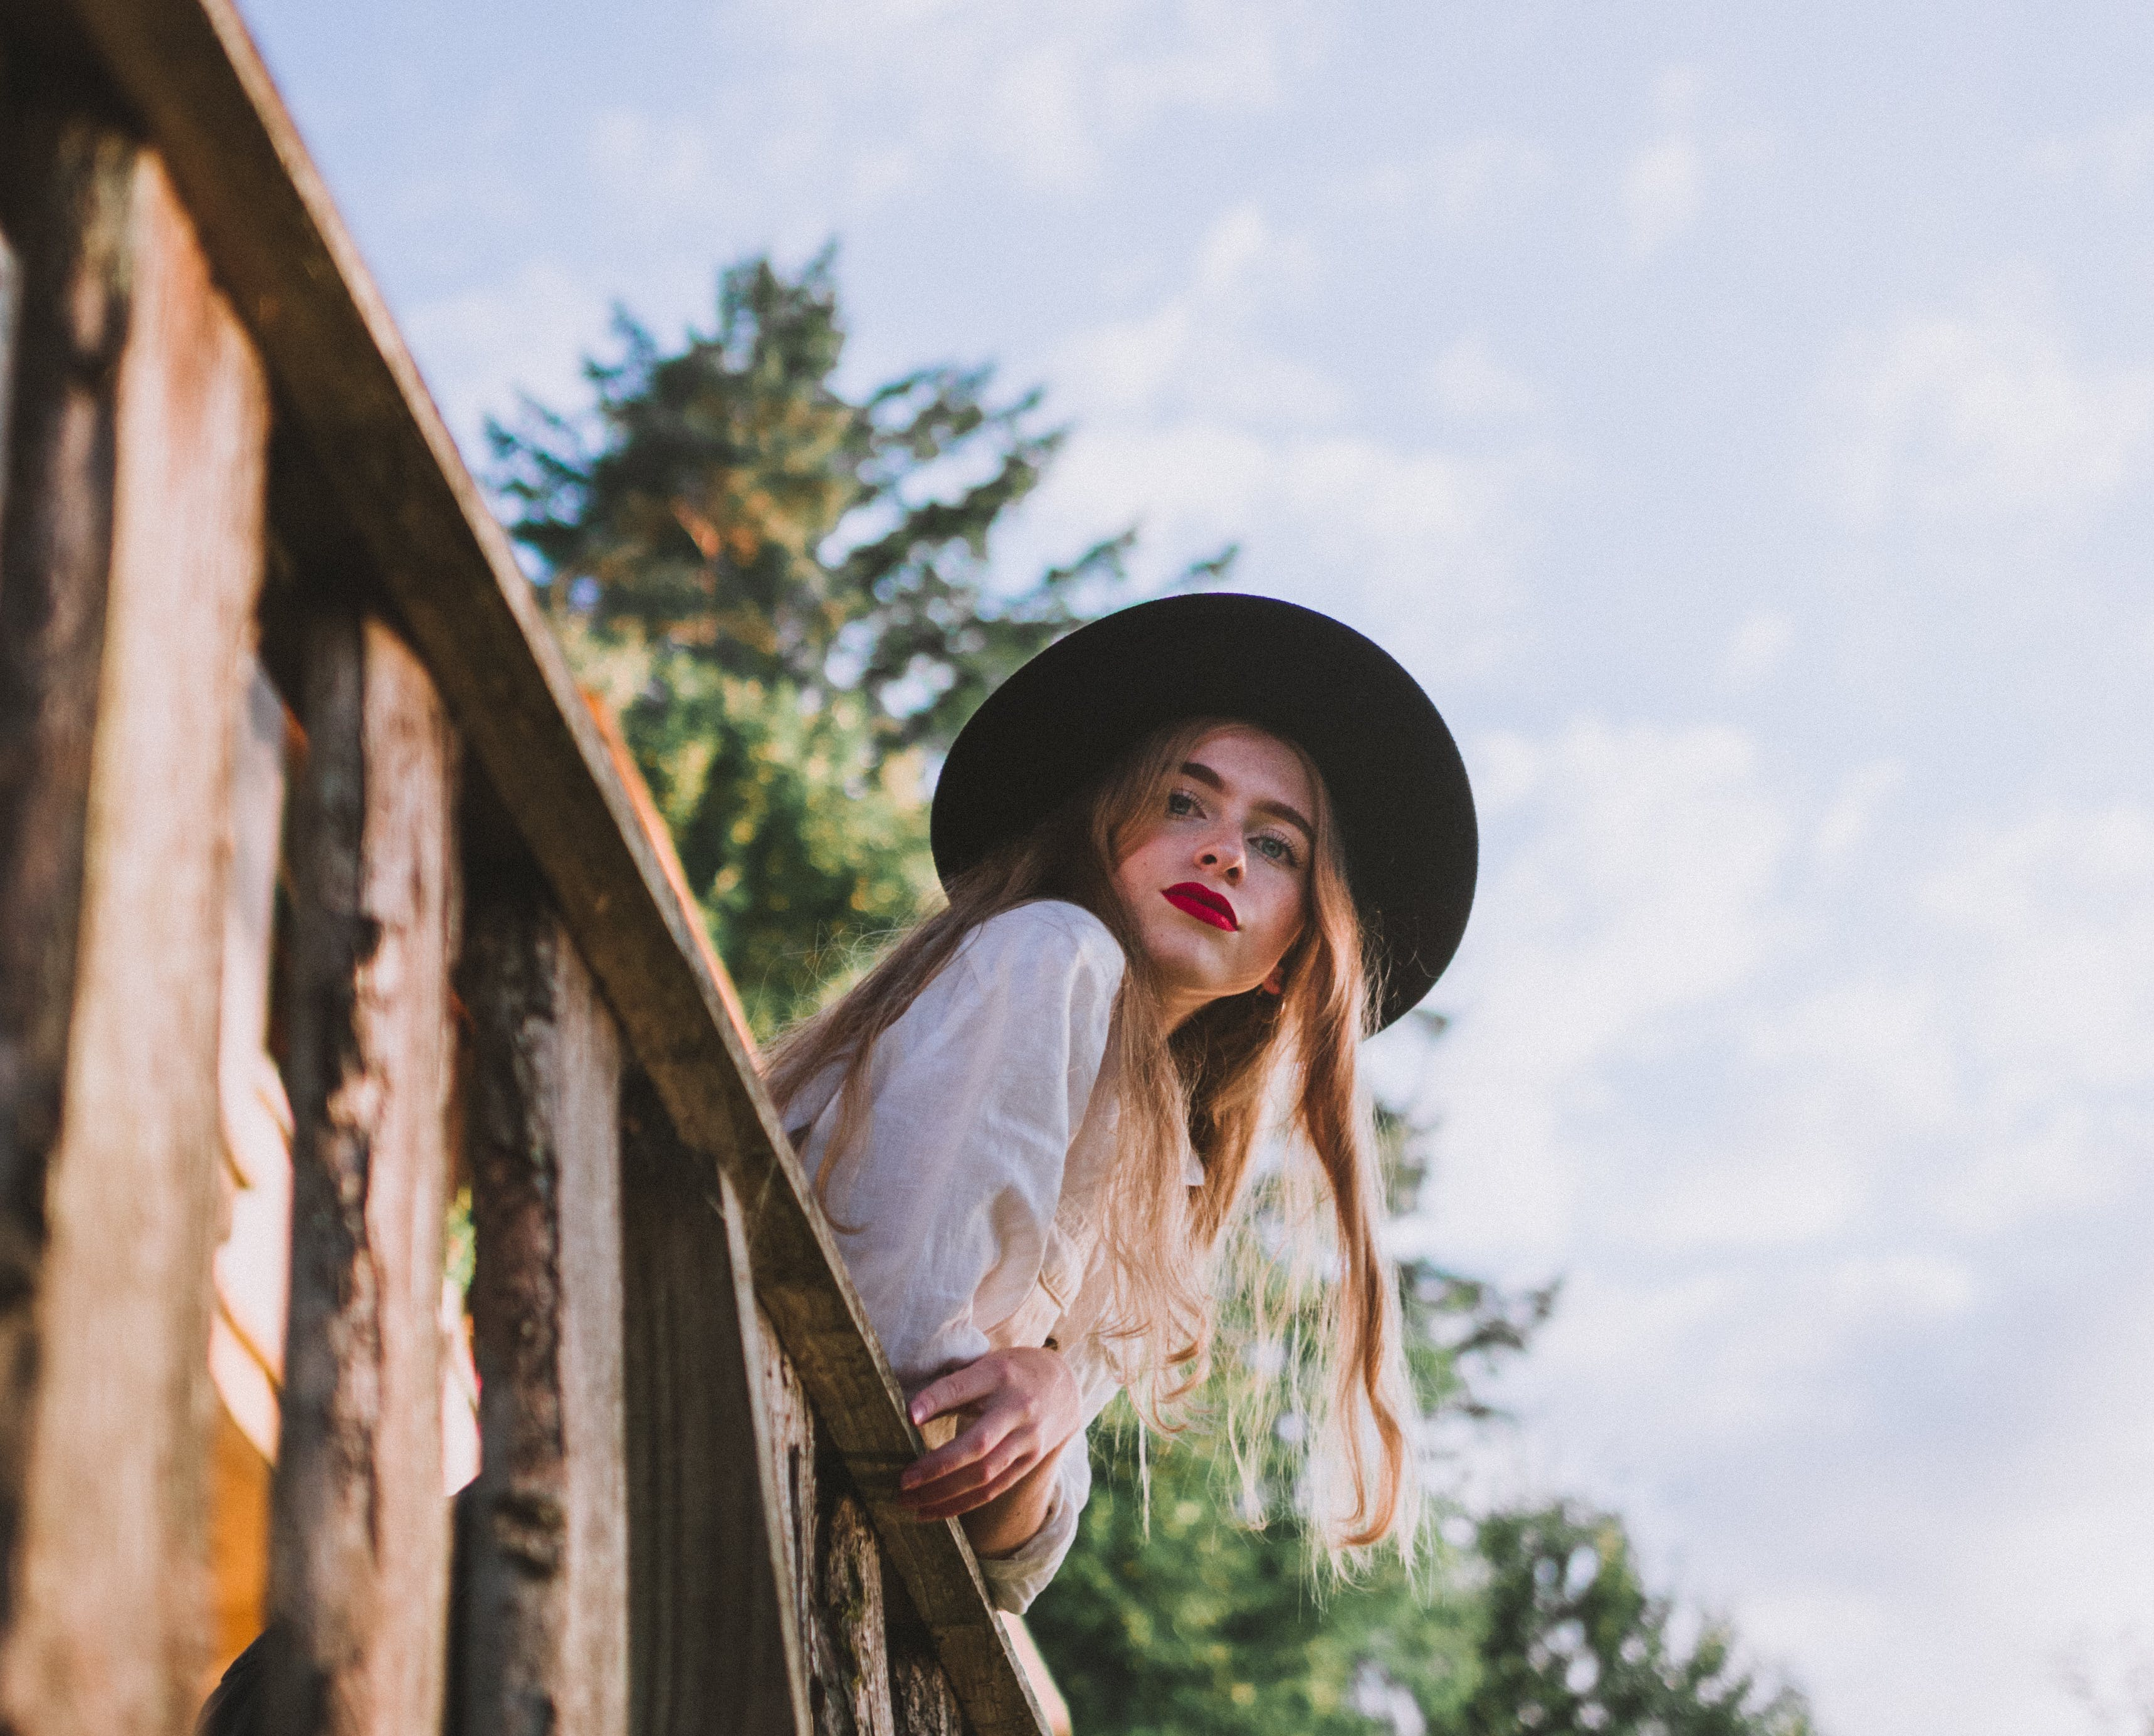 Woman Wearing Sun Hat Leaning on Wooden Railing